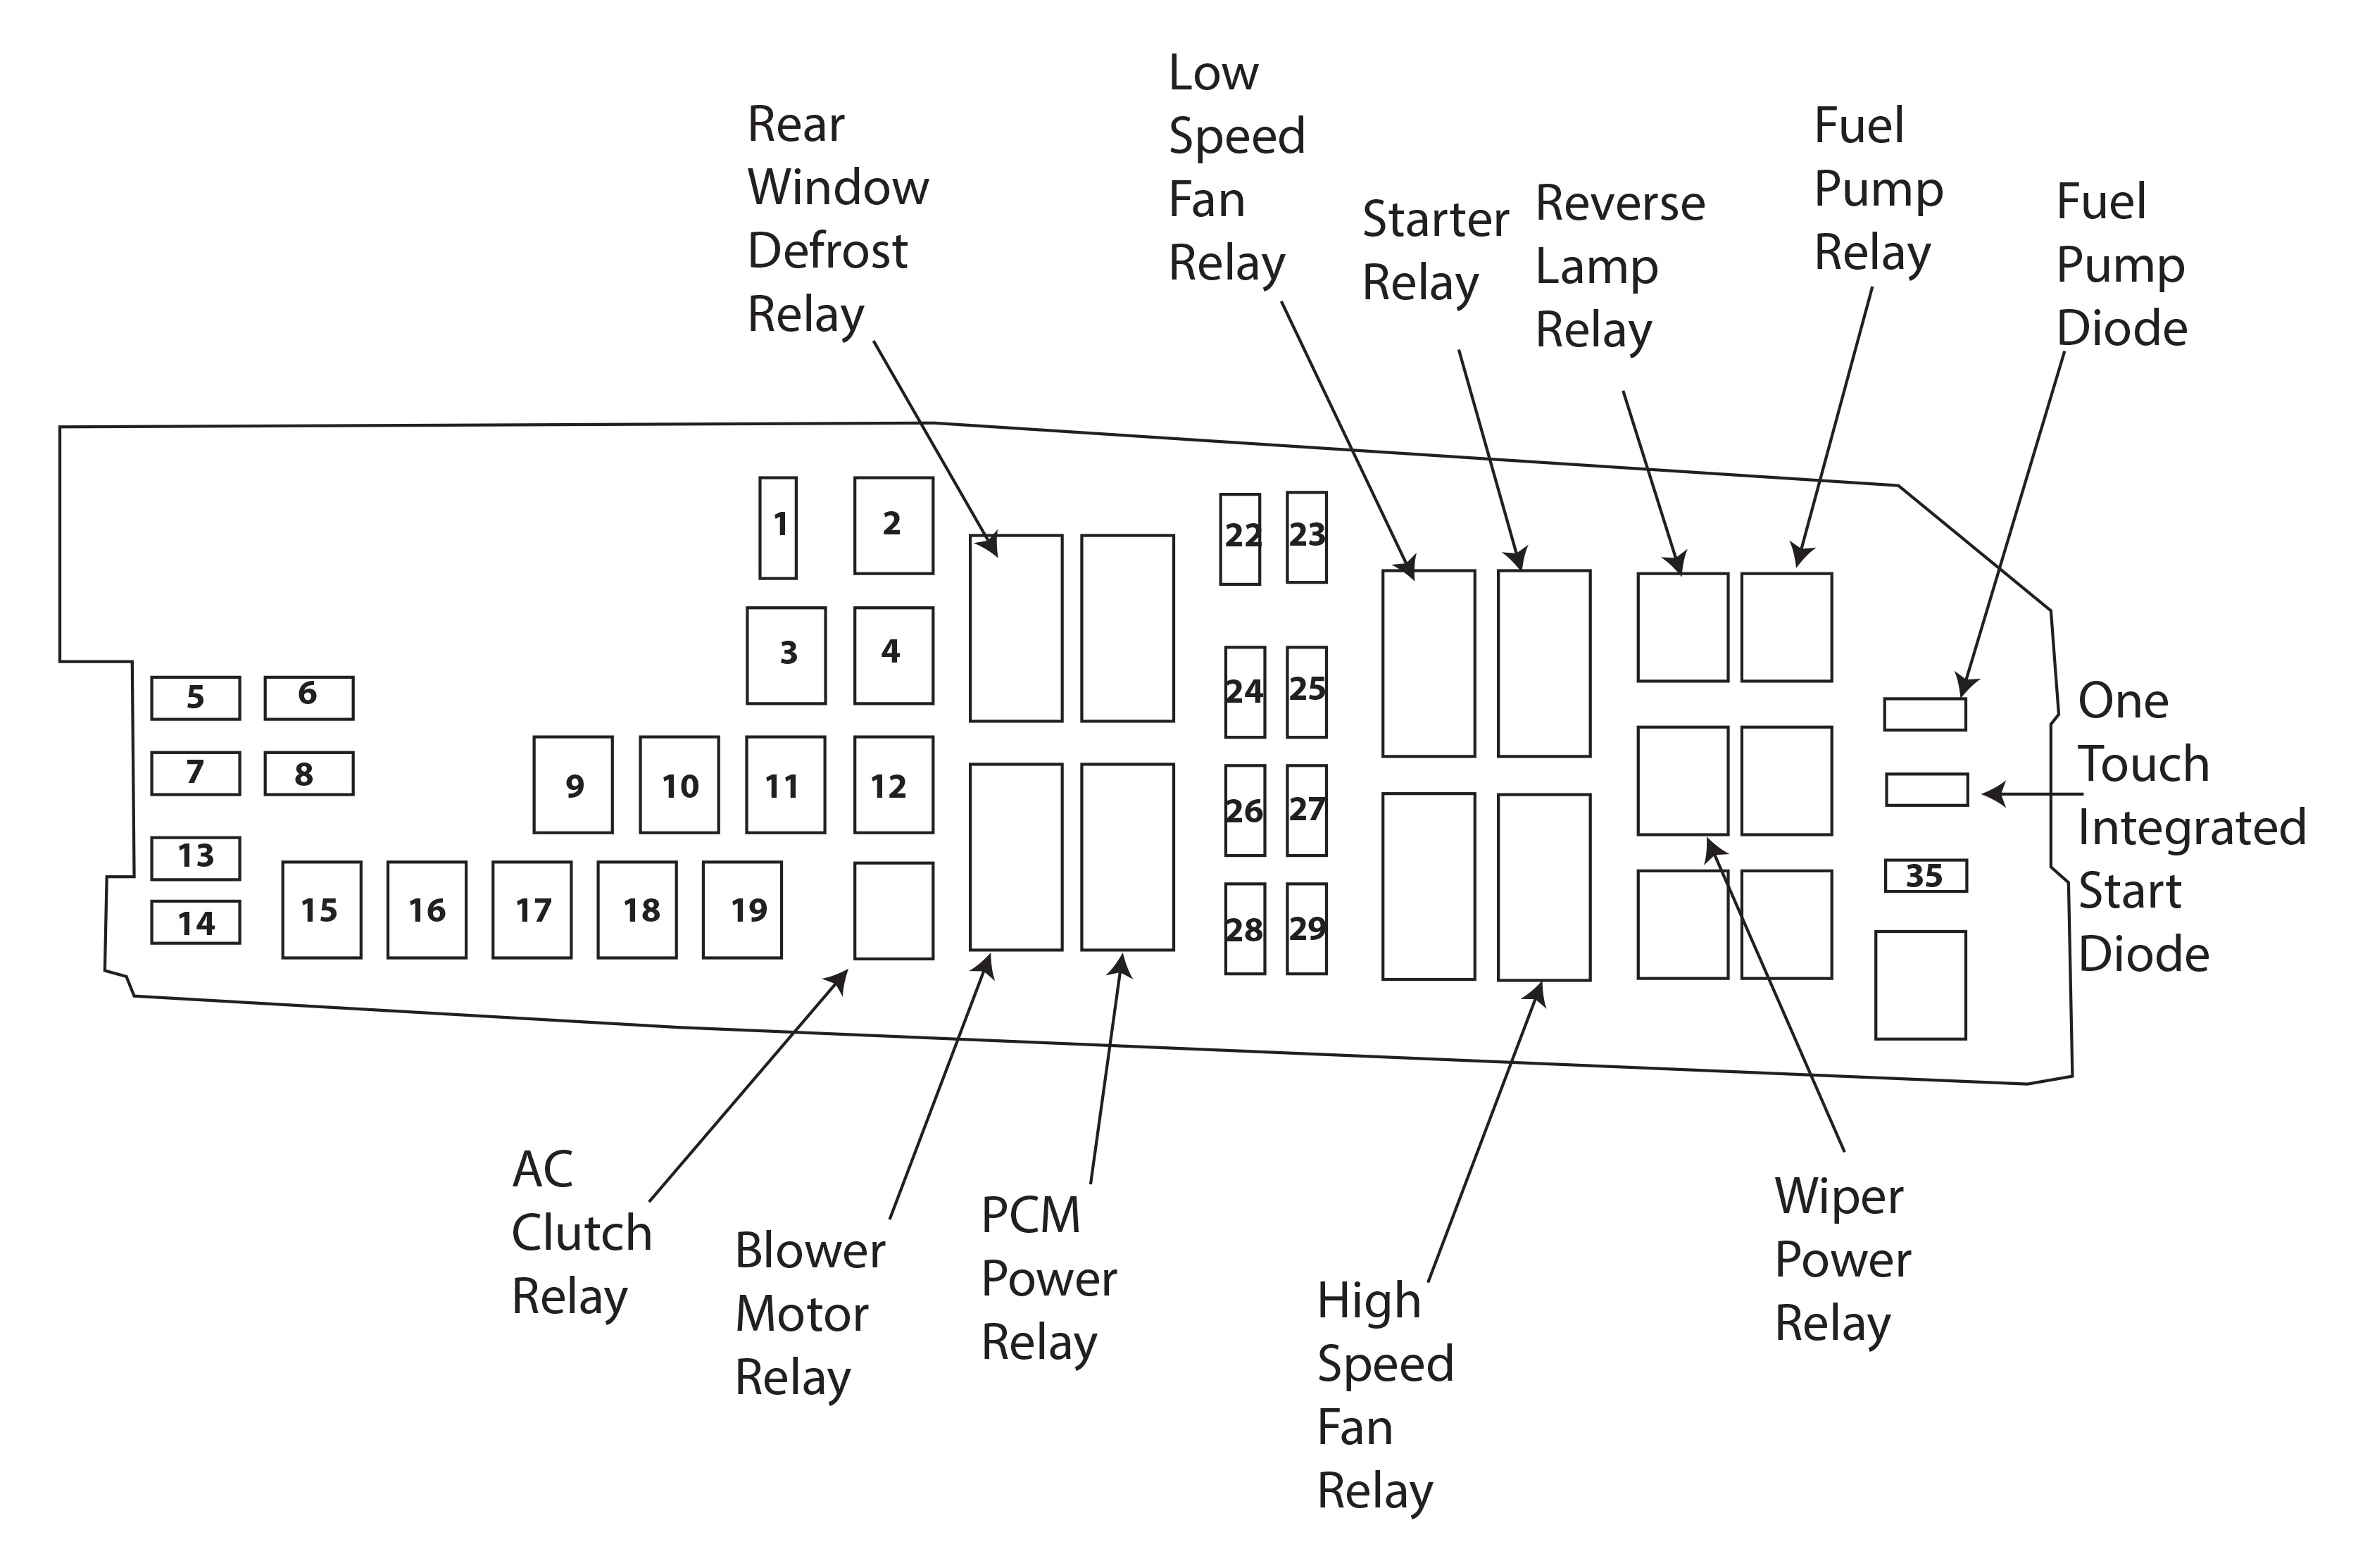 Focu Engine Diagram